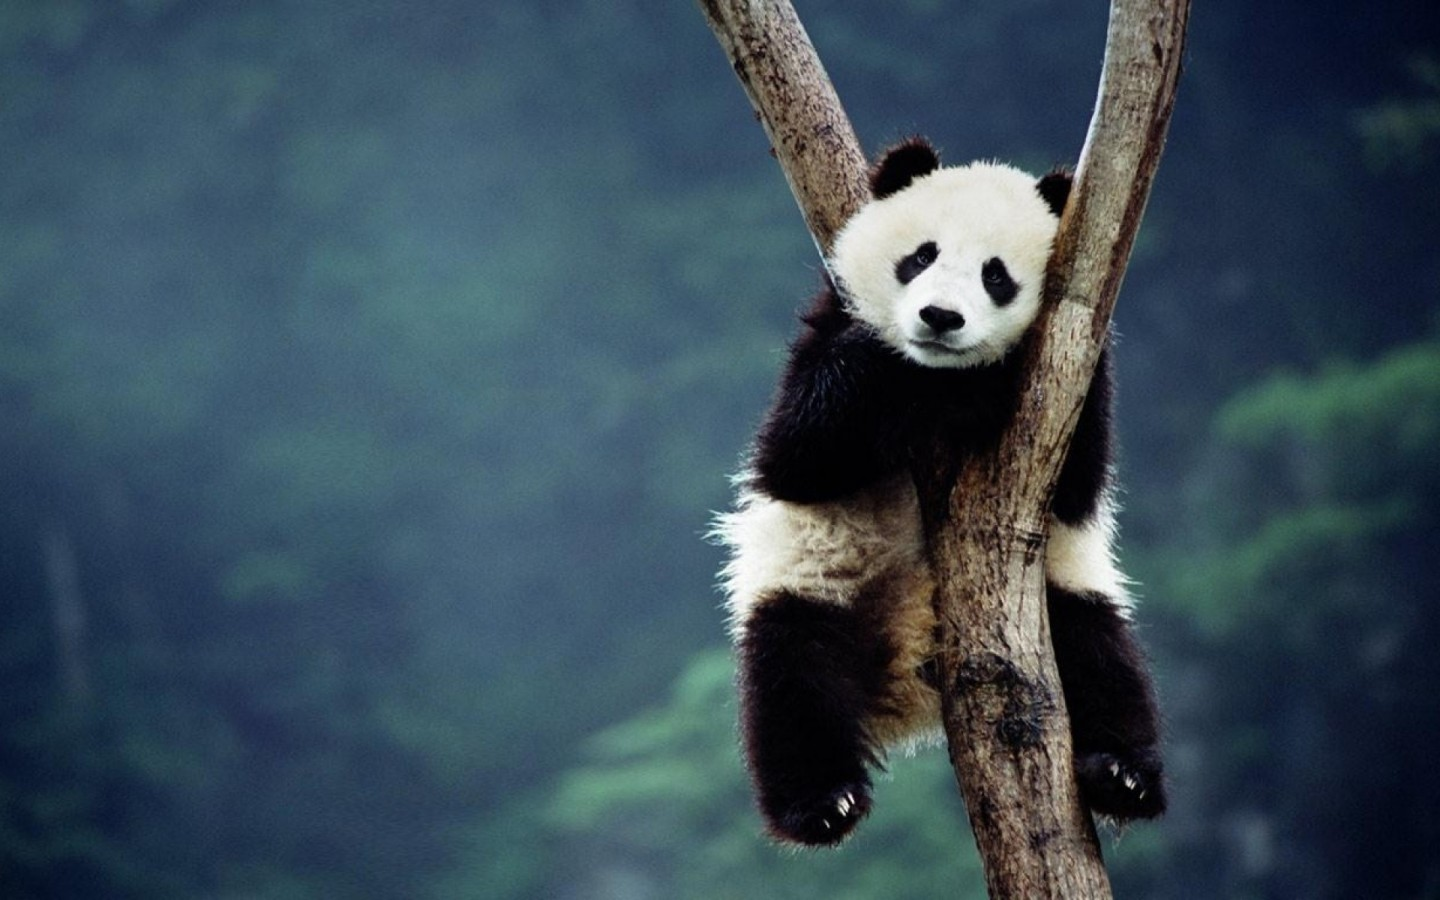 23040 download wallpaper Animals, Pandas screensavers and pictures for free